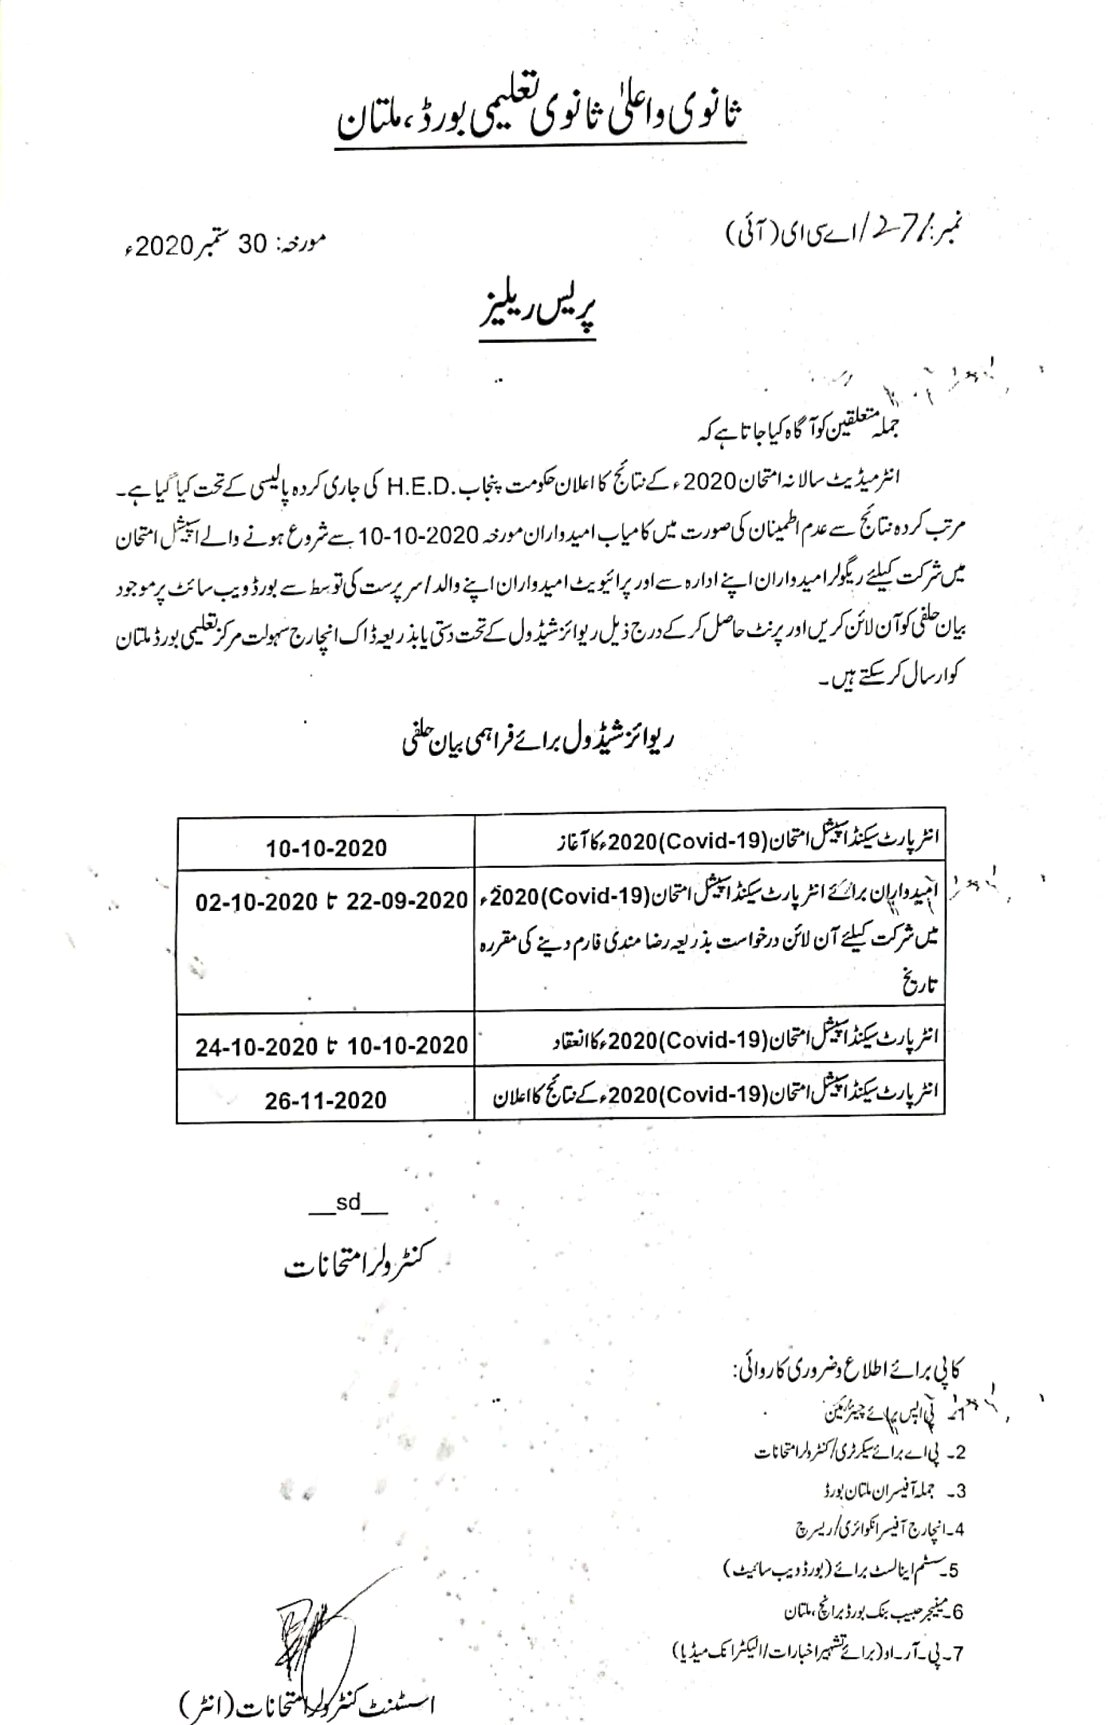 BISE Multan Revised Schedule of Submission of Declaration Form